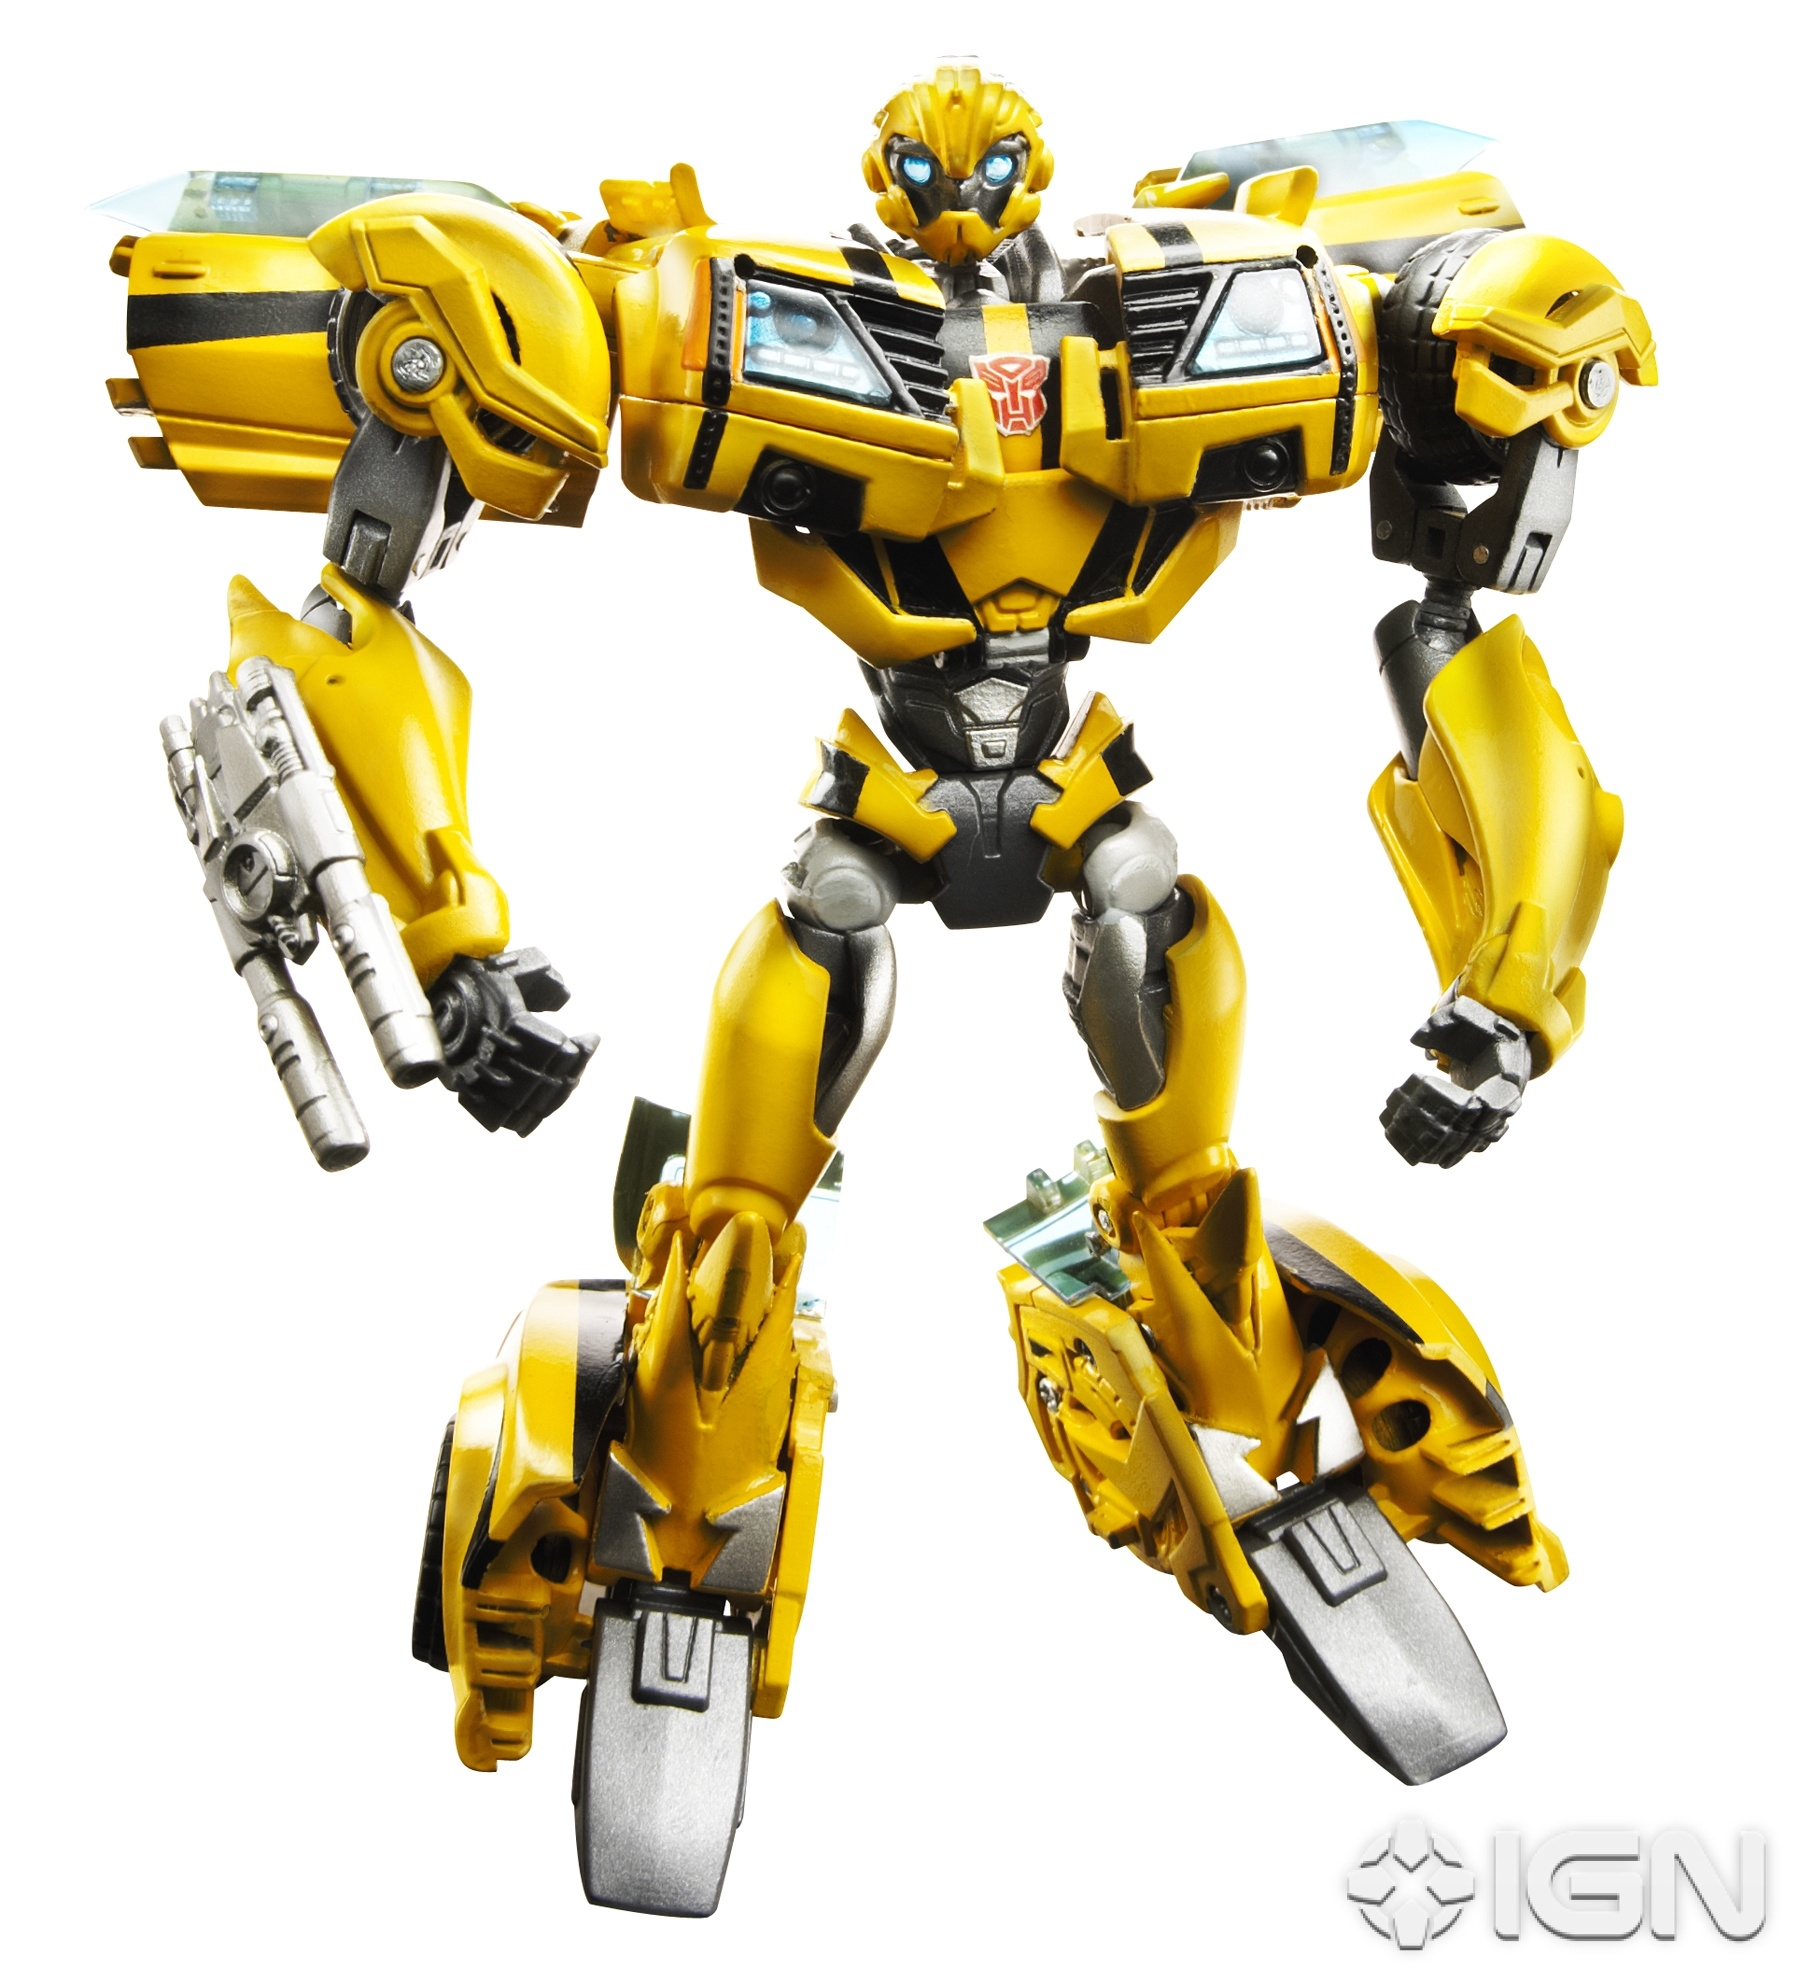 bumblebee transformer toy wallpaper